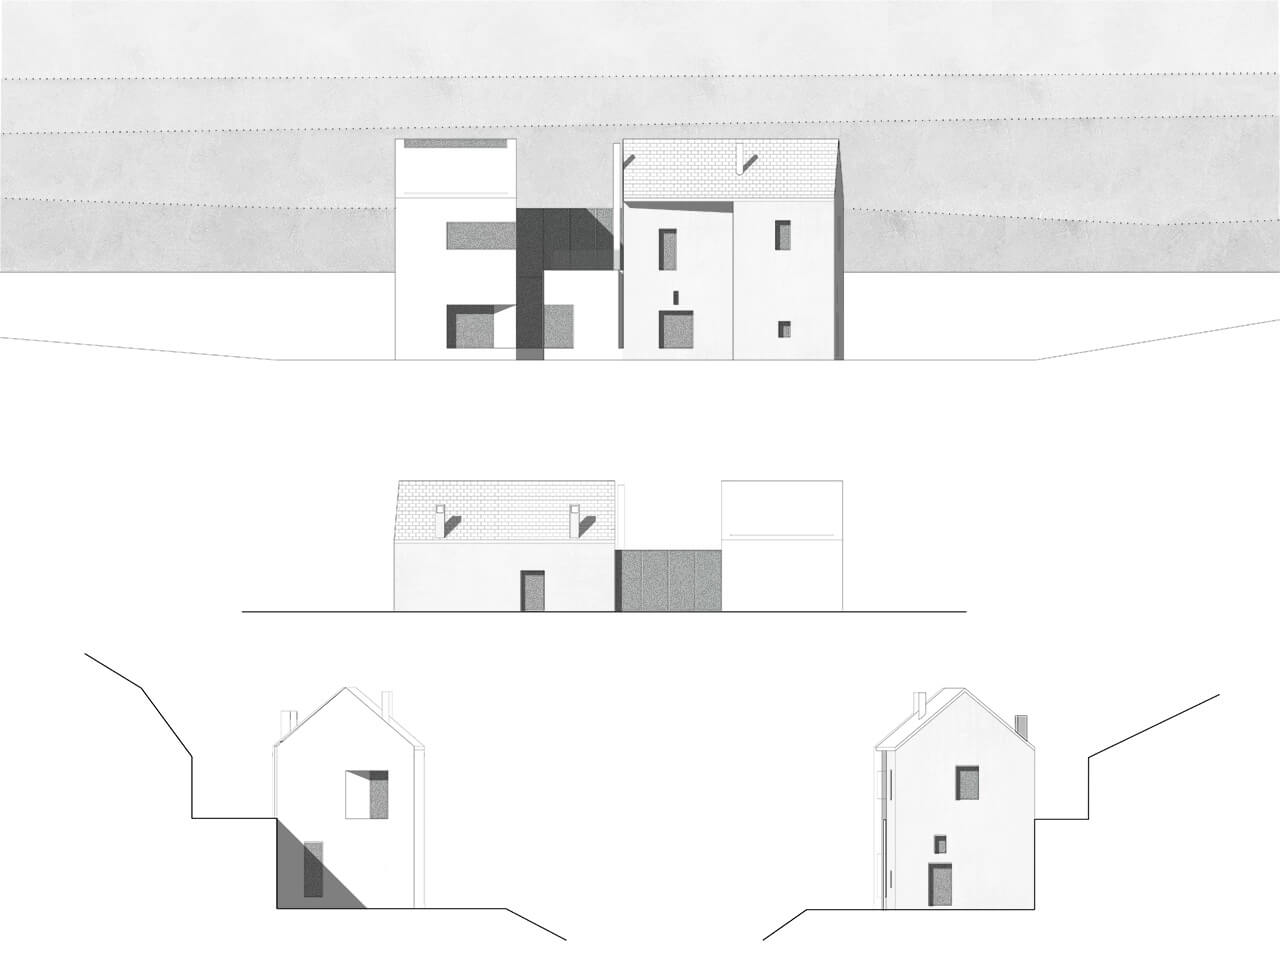 2013_House_in_Pezzolo_elevations_1280